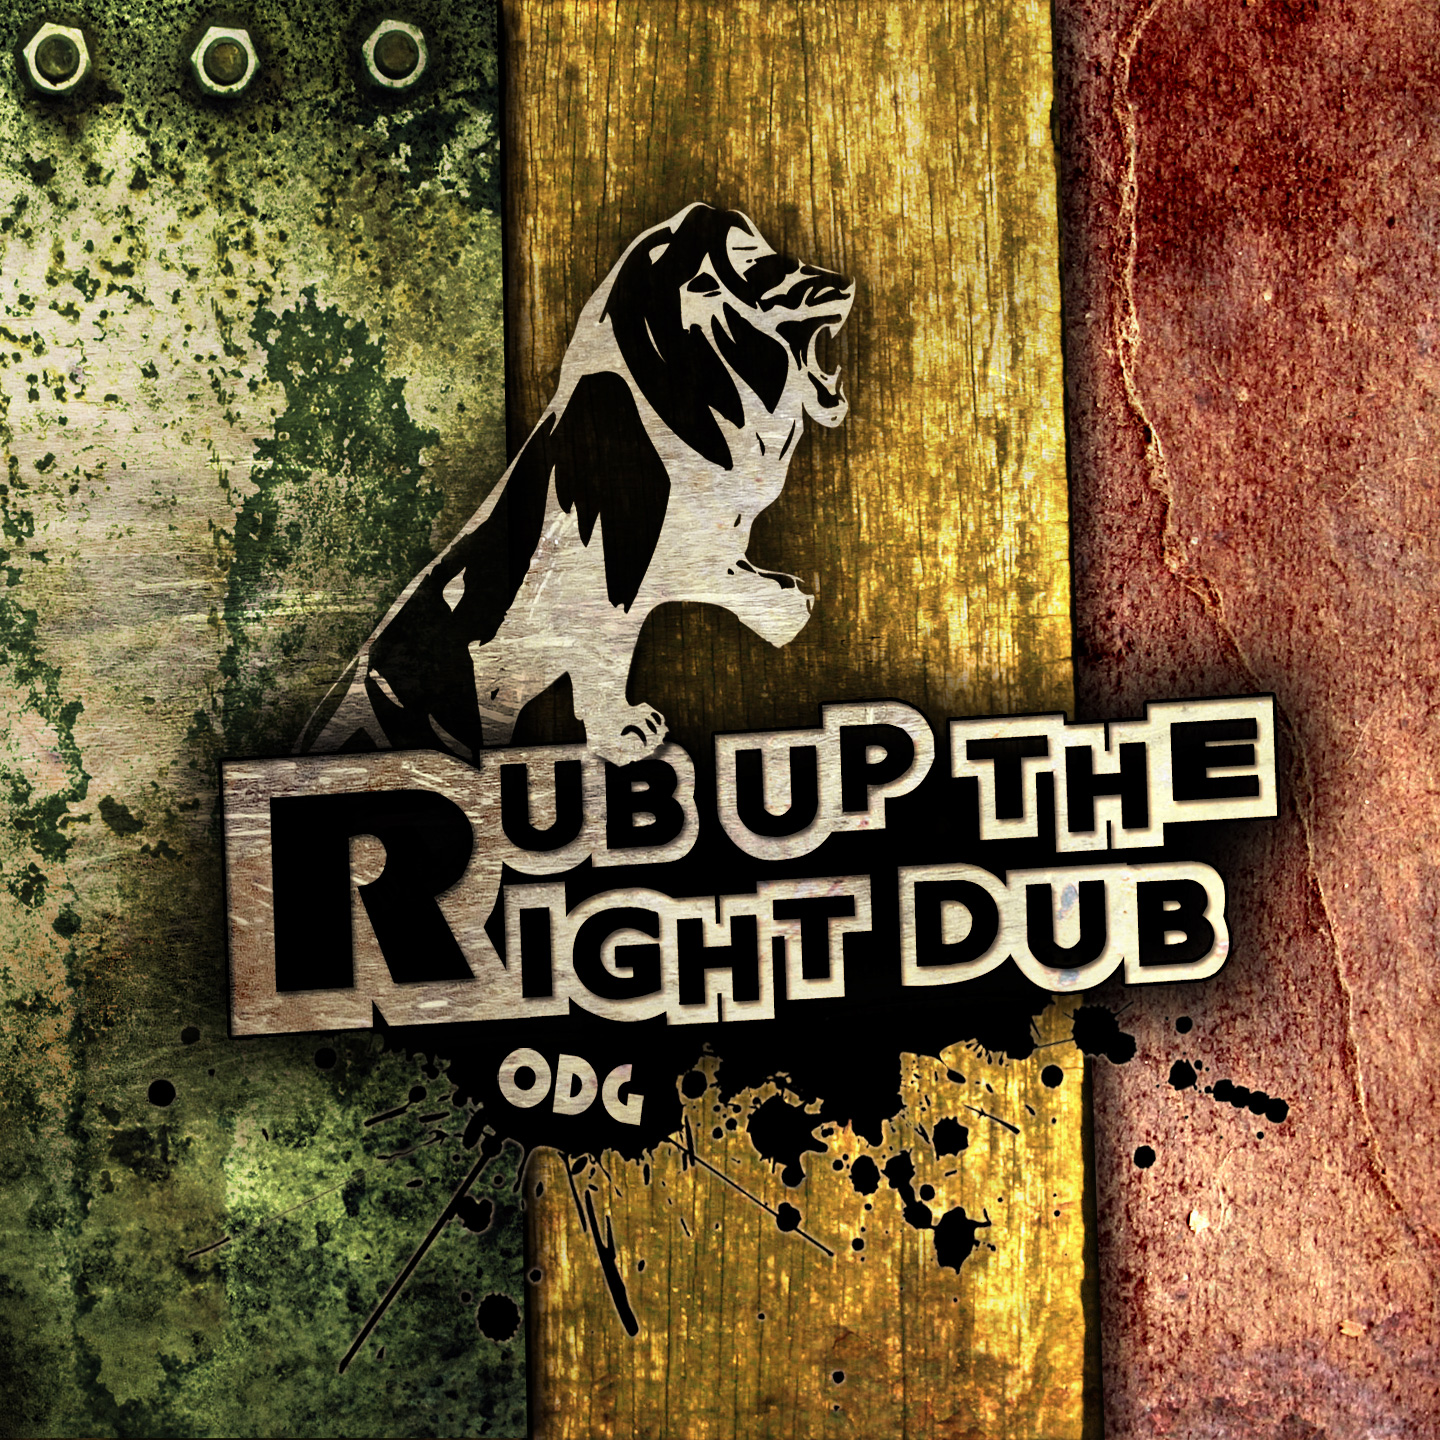 Rub up the right Dub